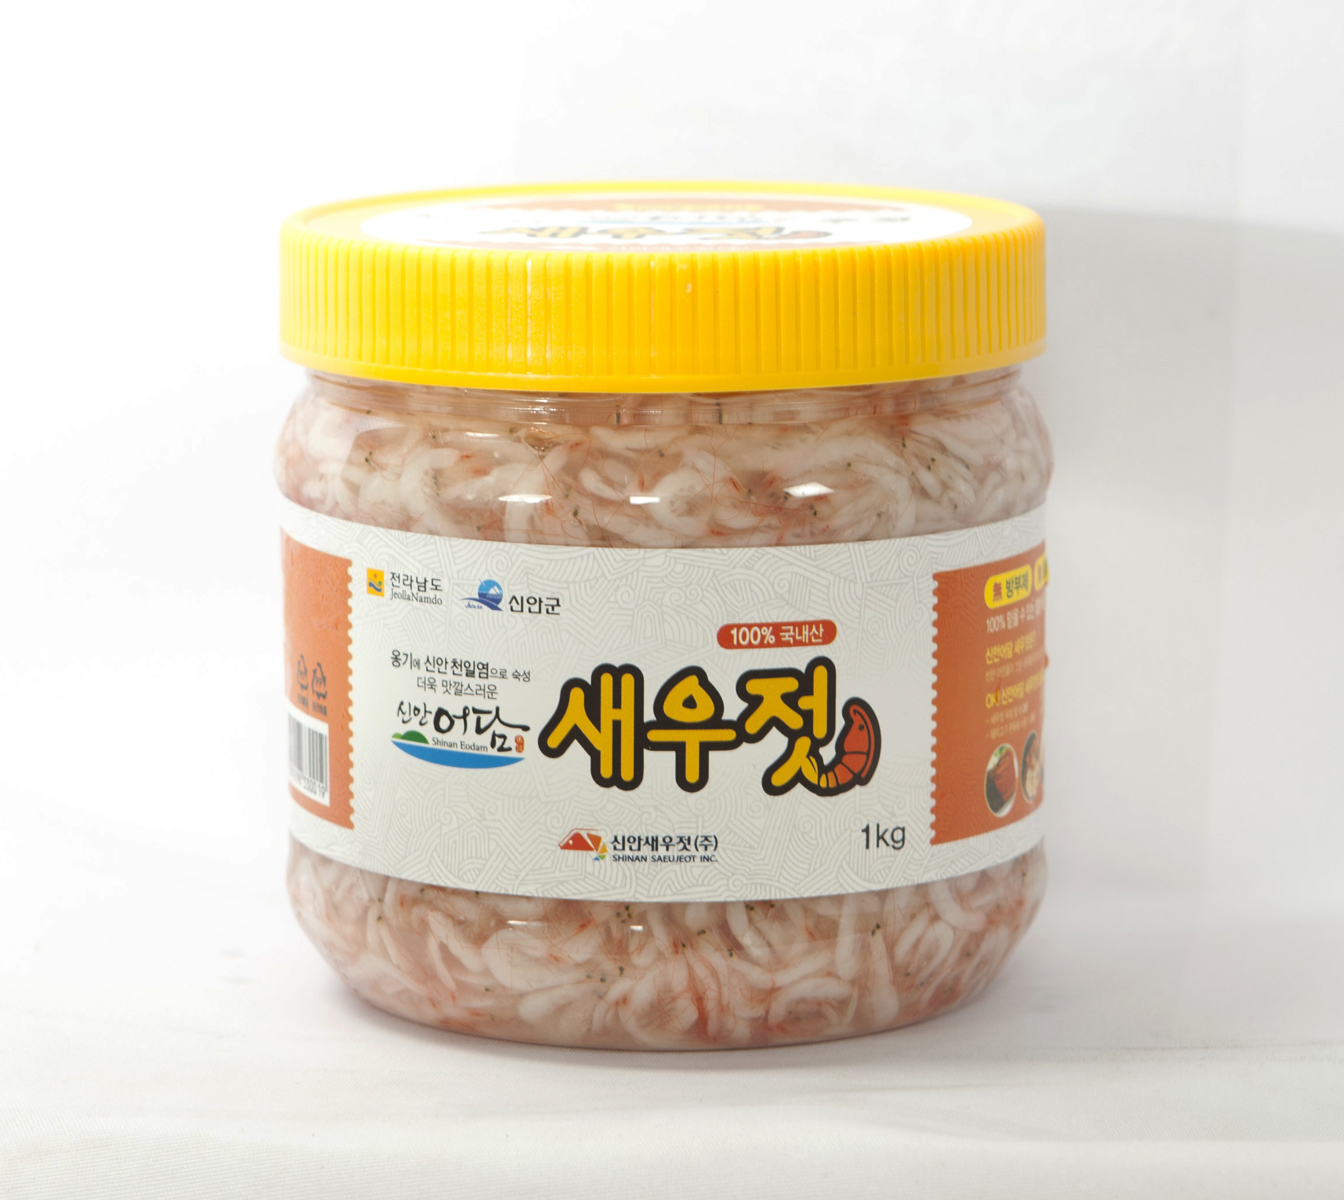 A product being made by mixing shrimp with solar salt. Can be used as substitution to salt.